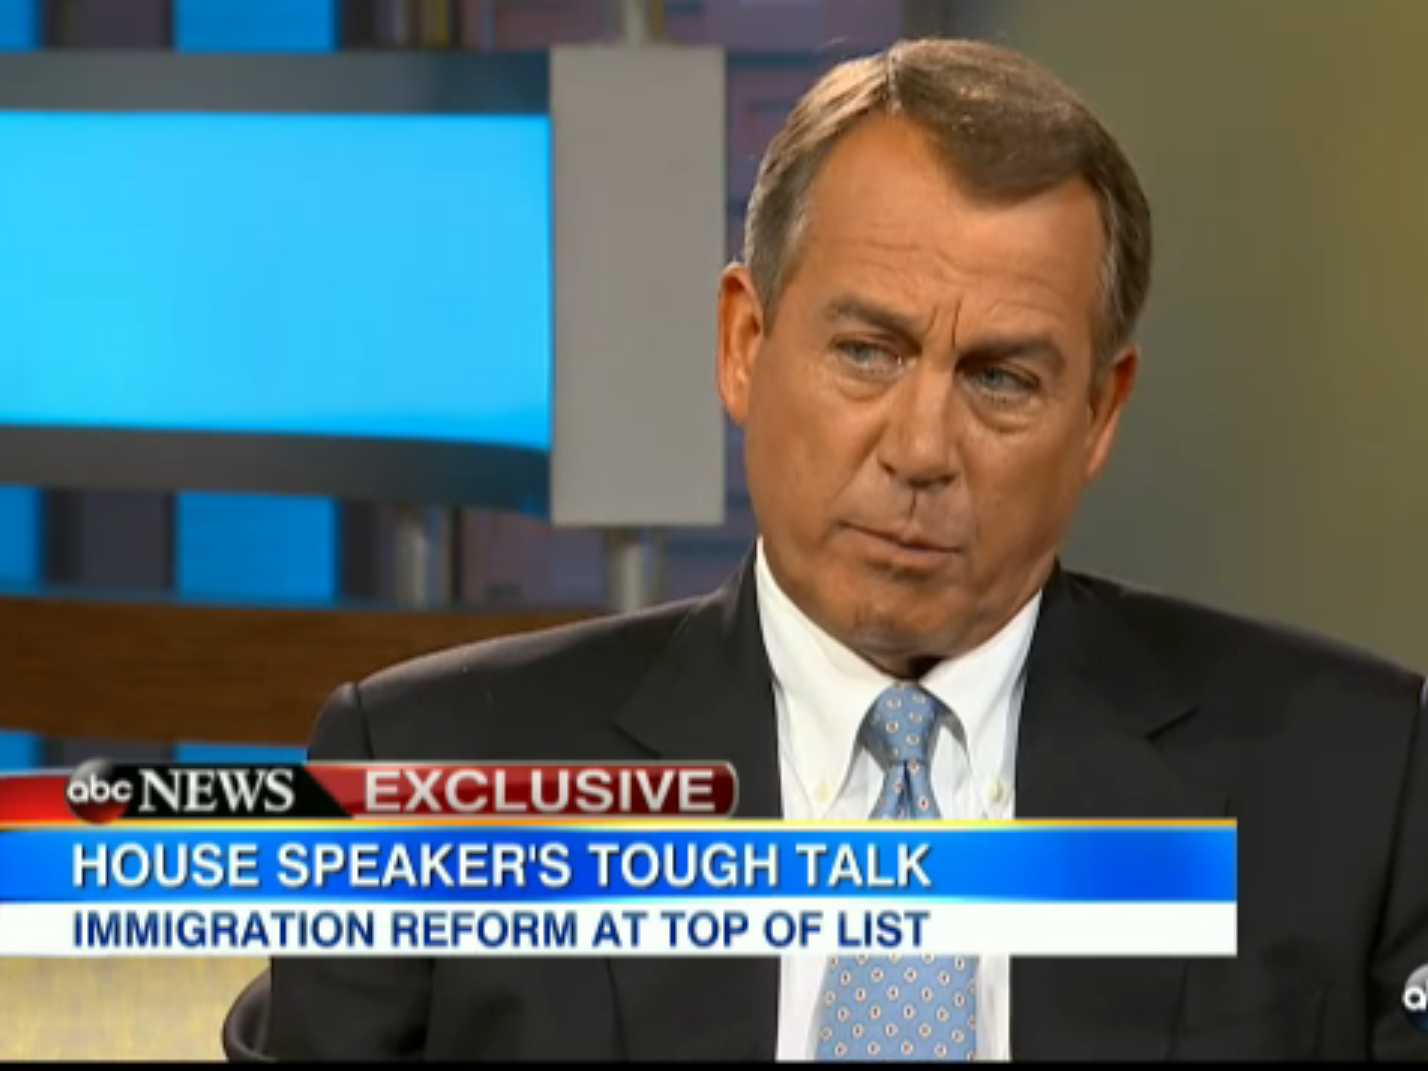 john-boehner-gave-the-all-important-signal-that-immigration-reform-can-pass-the-house